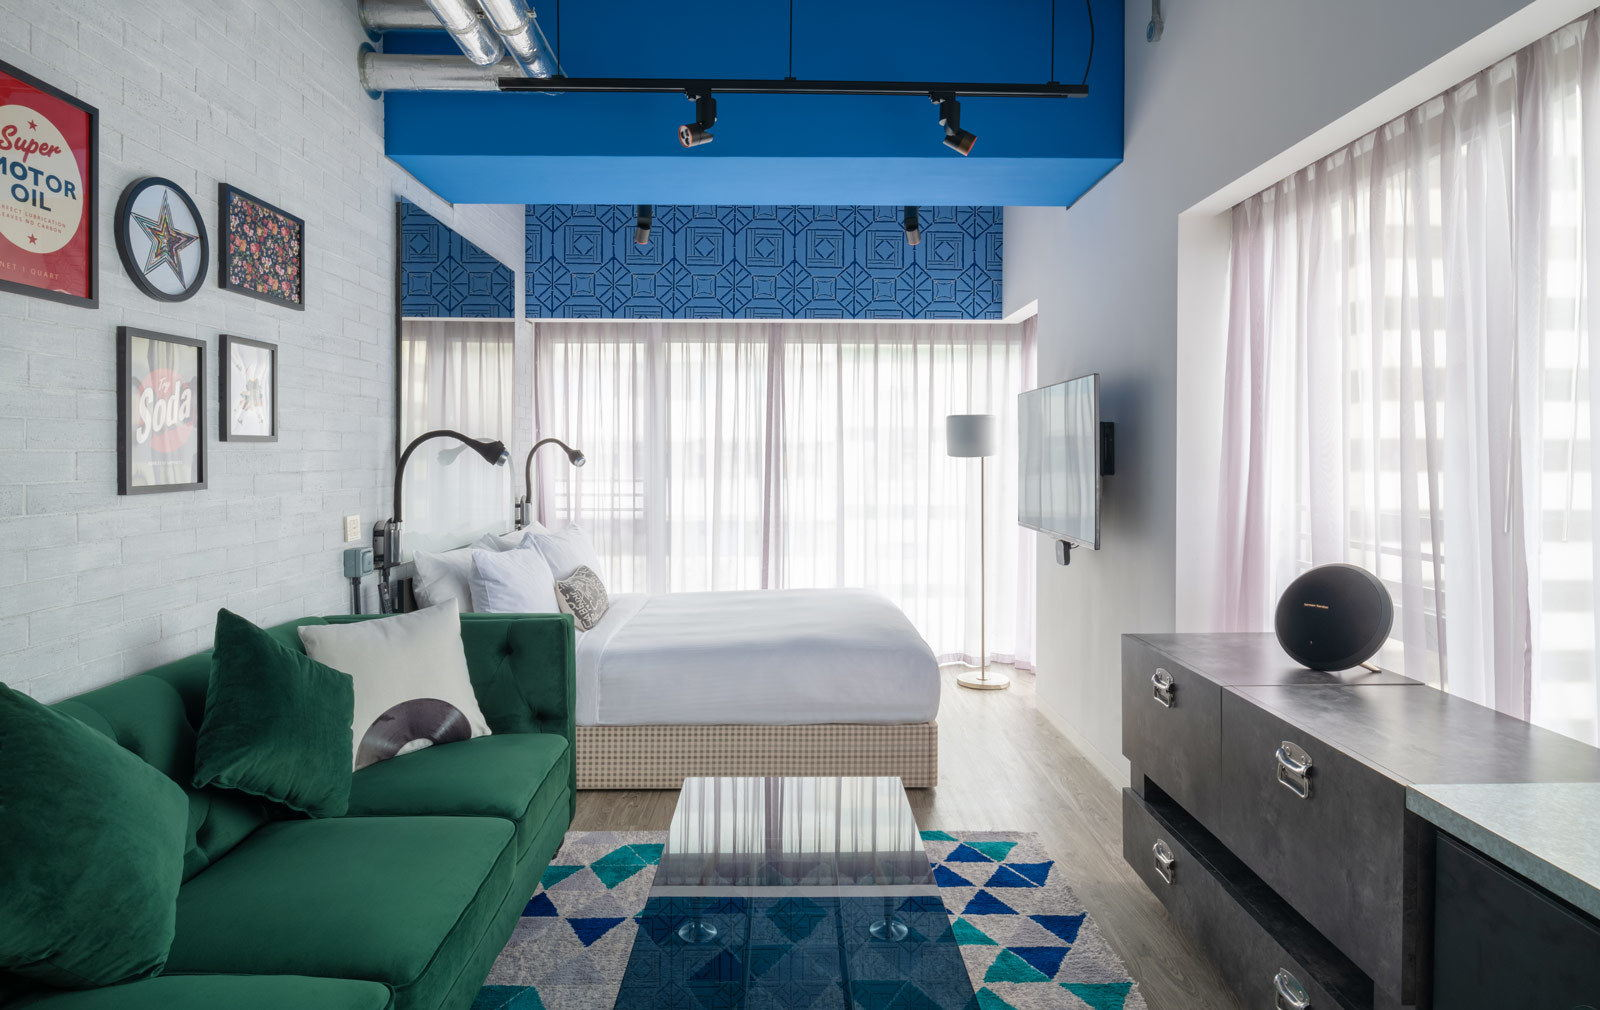 Ovolo Southside Corner Deluxe bed room interior